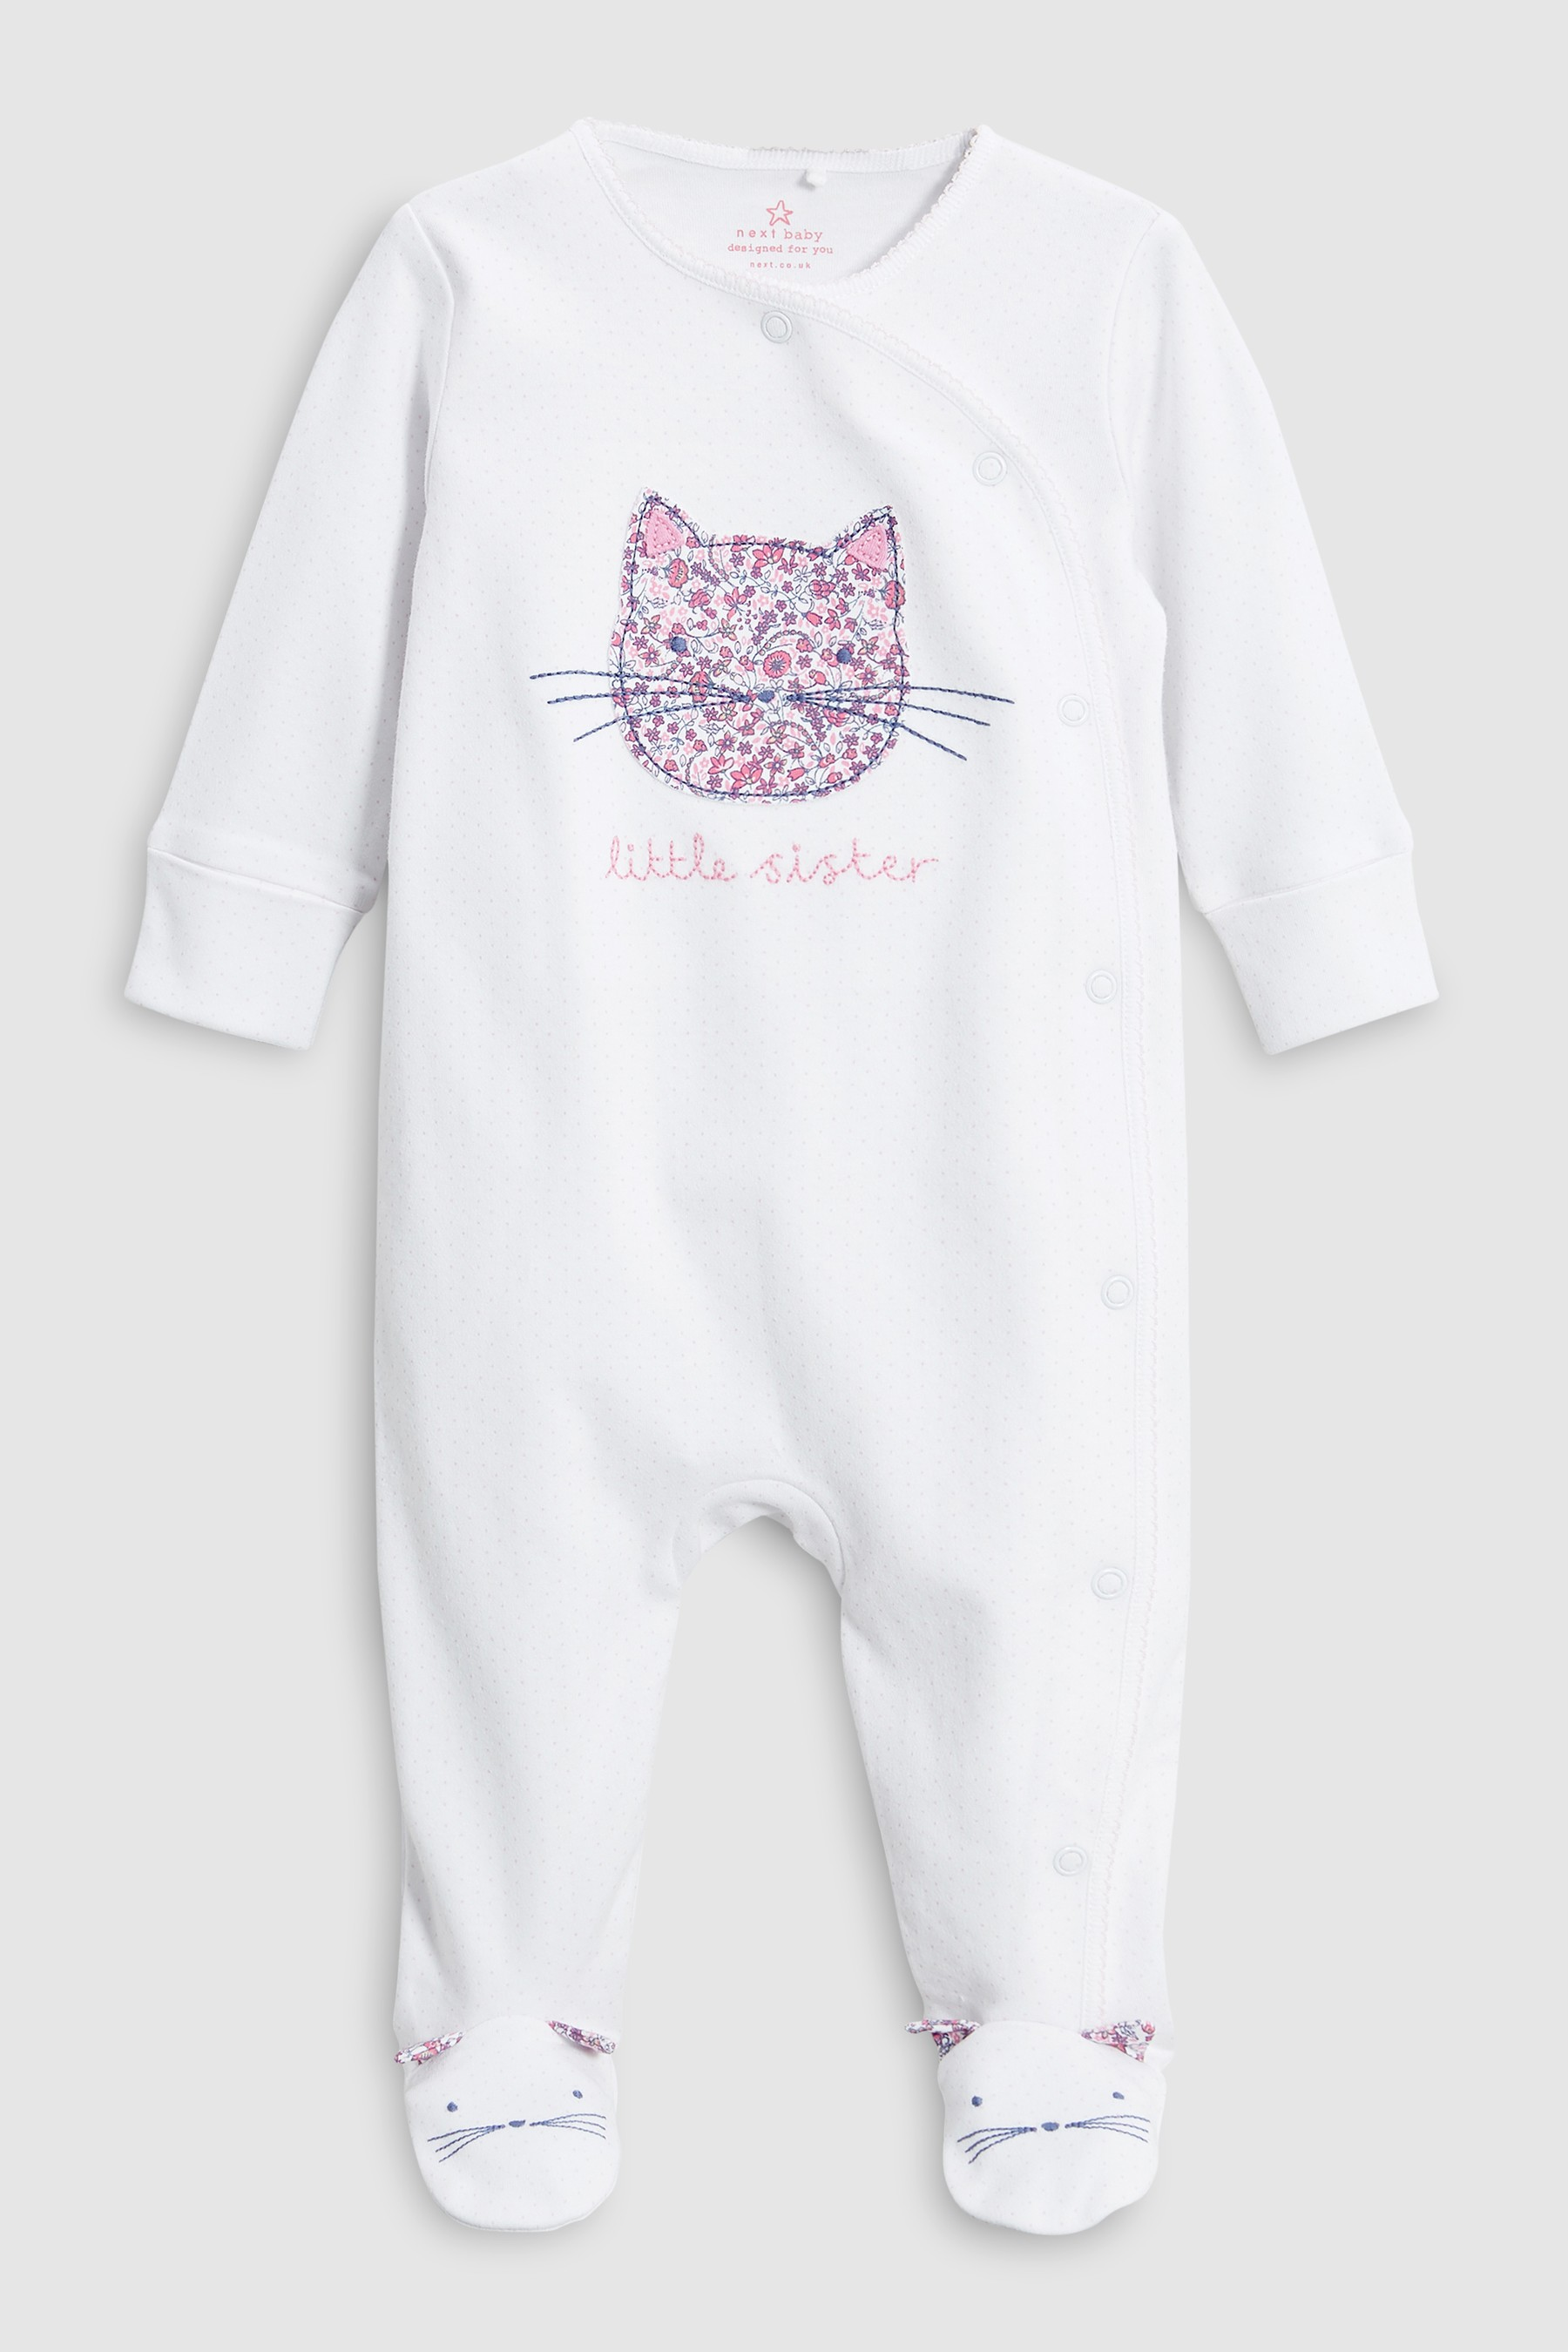 46465153281e Girls Next White Little Sister Cat Sleepsuit (0-18mths) - White ...